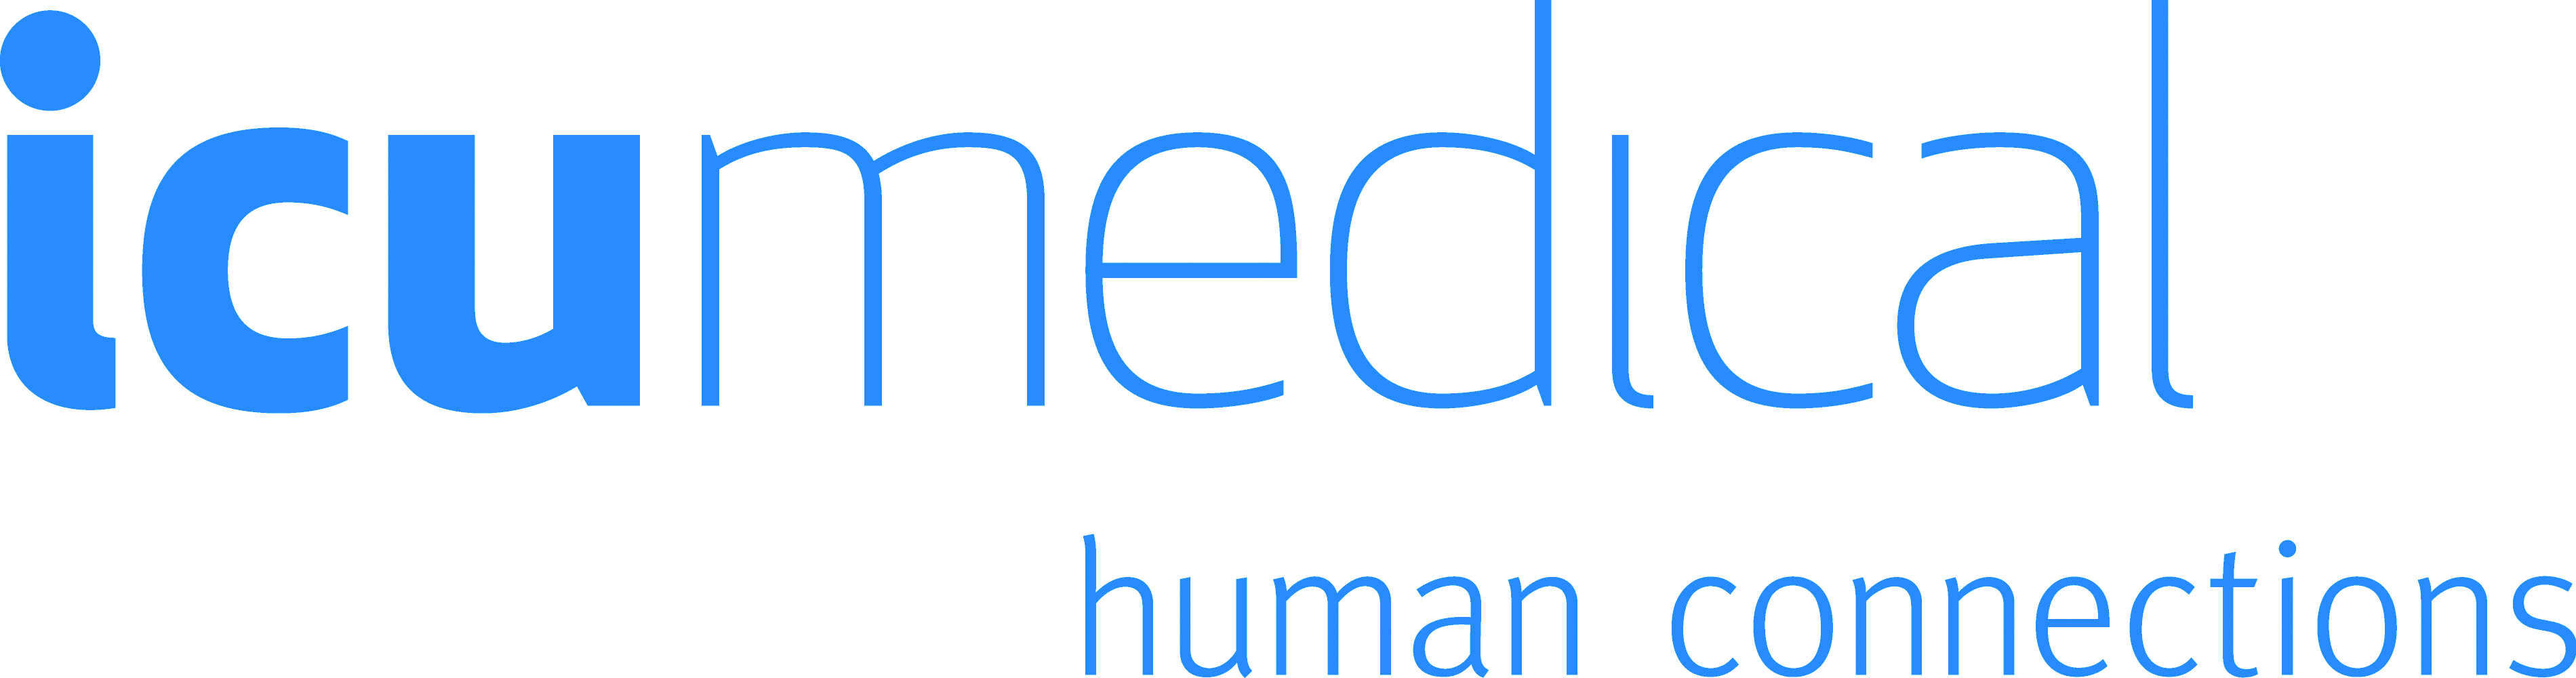 ICU_Medical_Logo_CMYK_HiRes.jpg